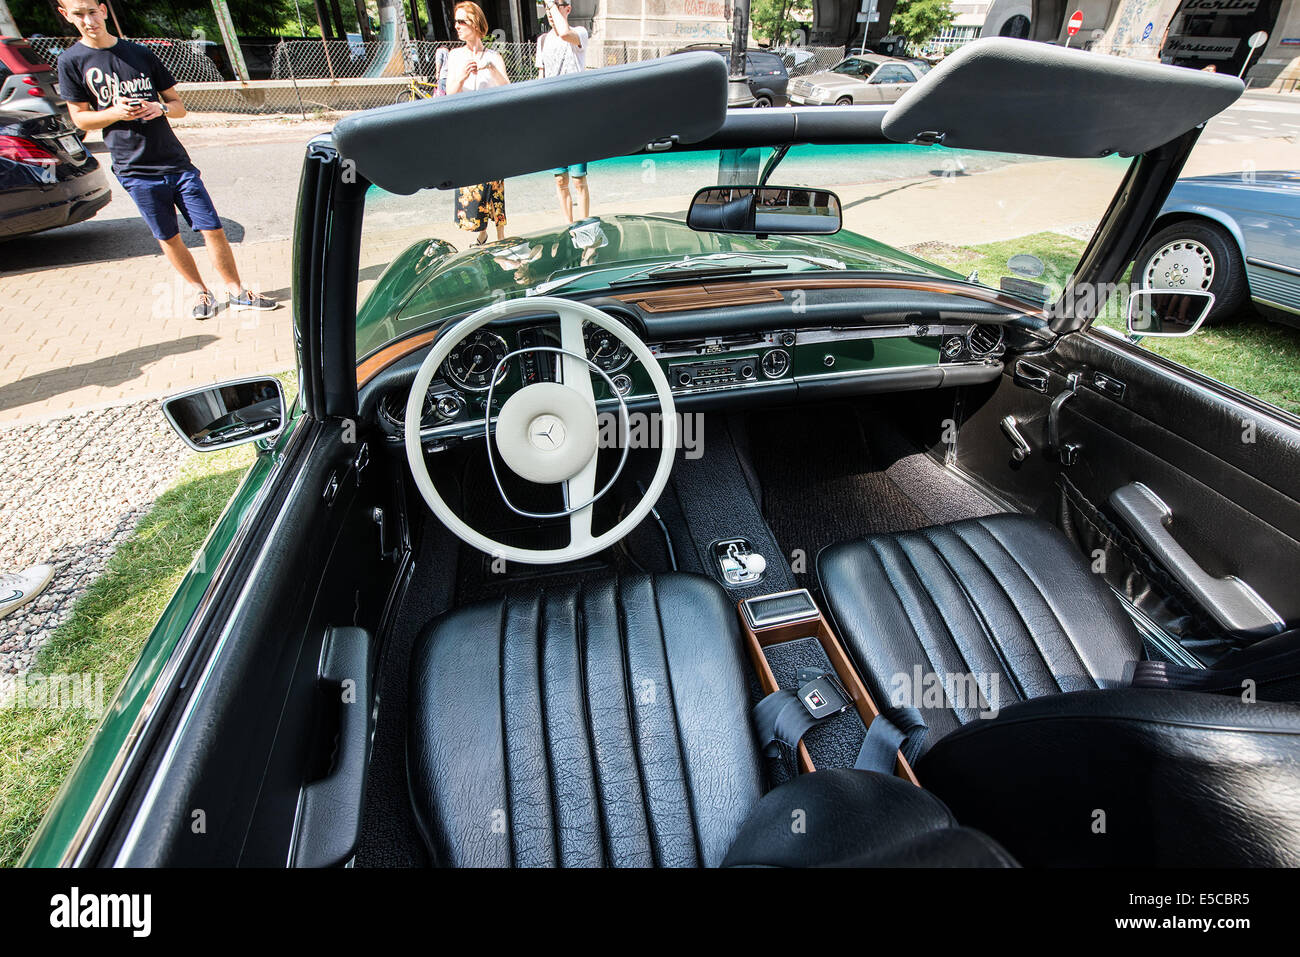 Interior Of Mercedes Benz W113 280 SL Cabrio During Vintage Cars Show In Station Bar Warsaw Poland Credit Kpzfoto Alamy Live News